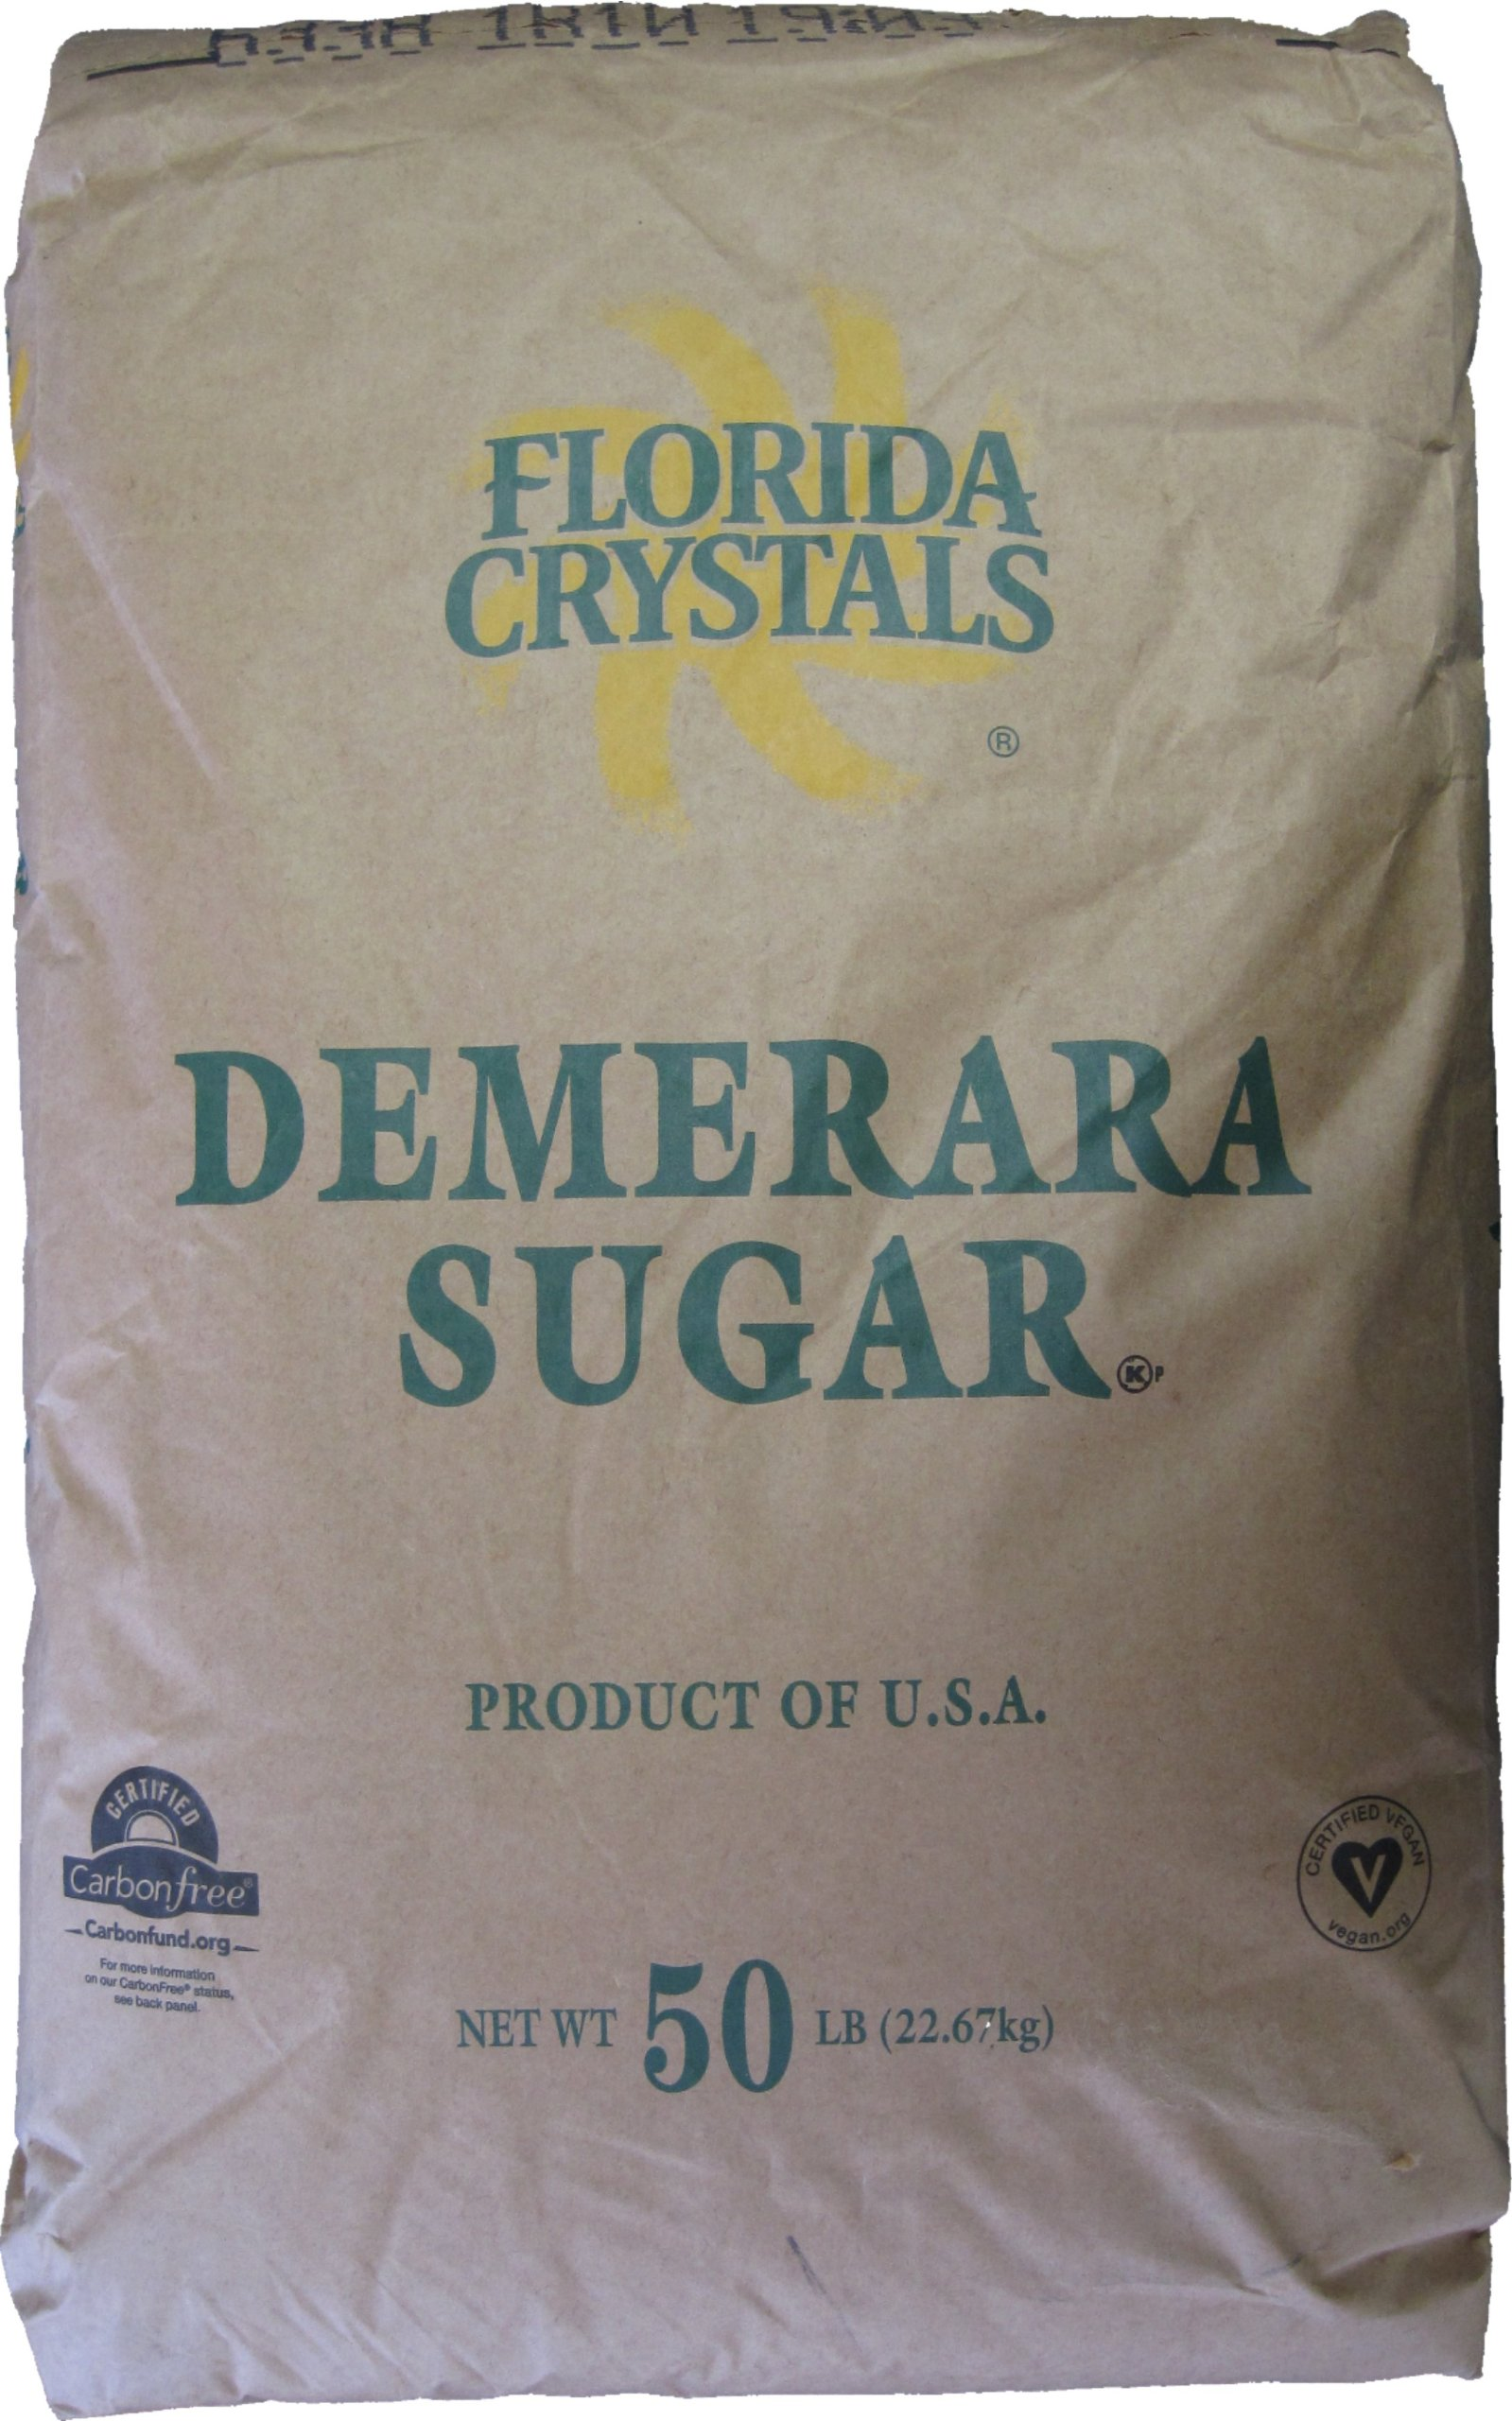 Demerara Sugar - 50 Pounds by Florida Crystals